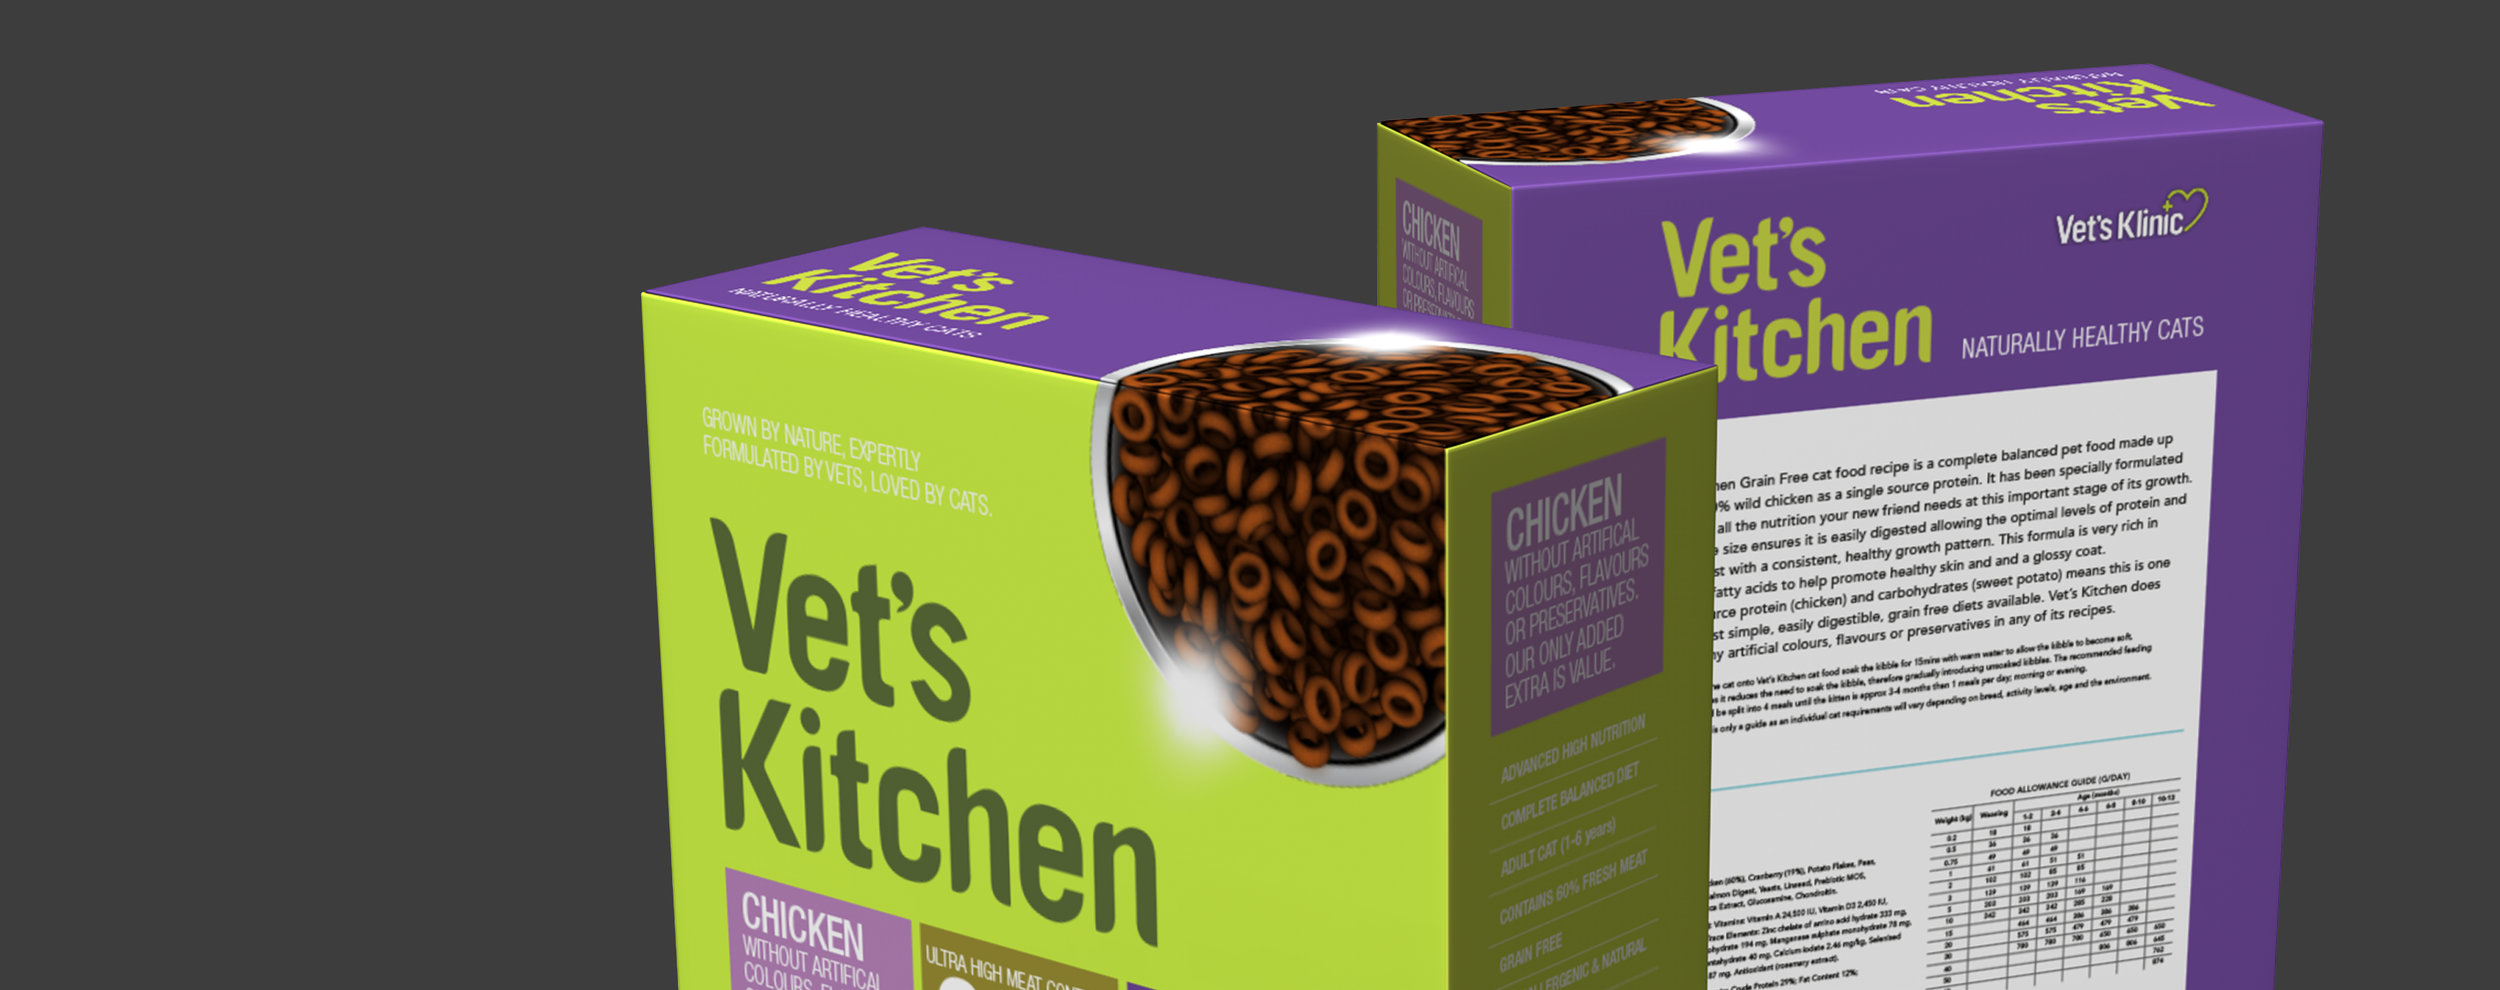 Vets Kitchen 2.jpg